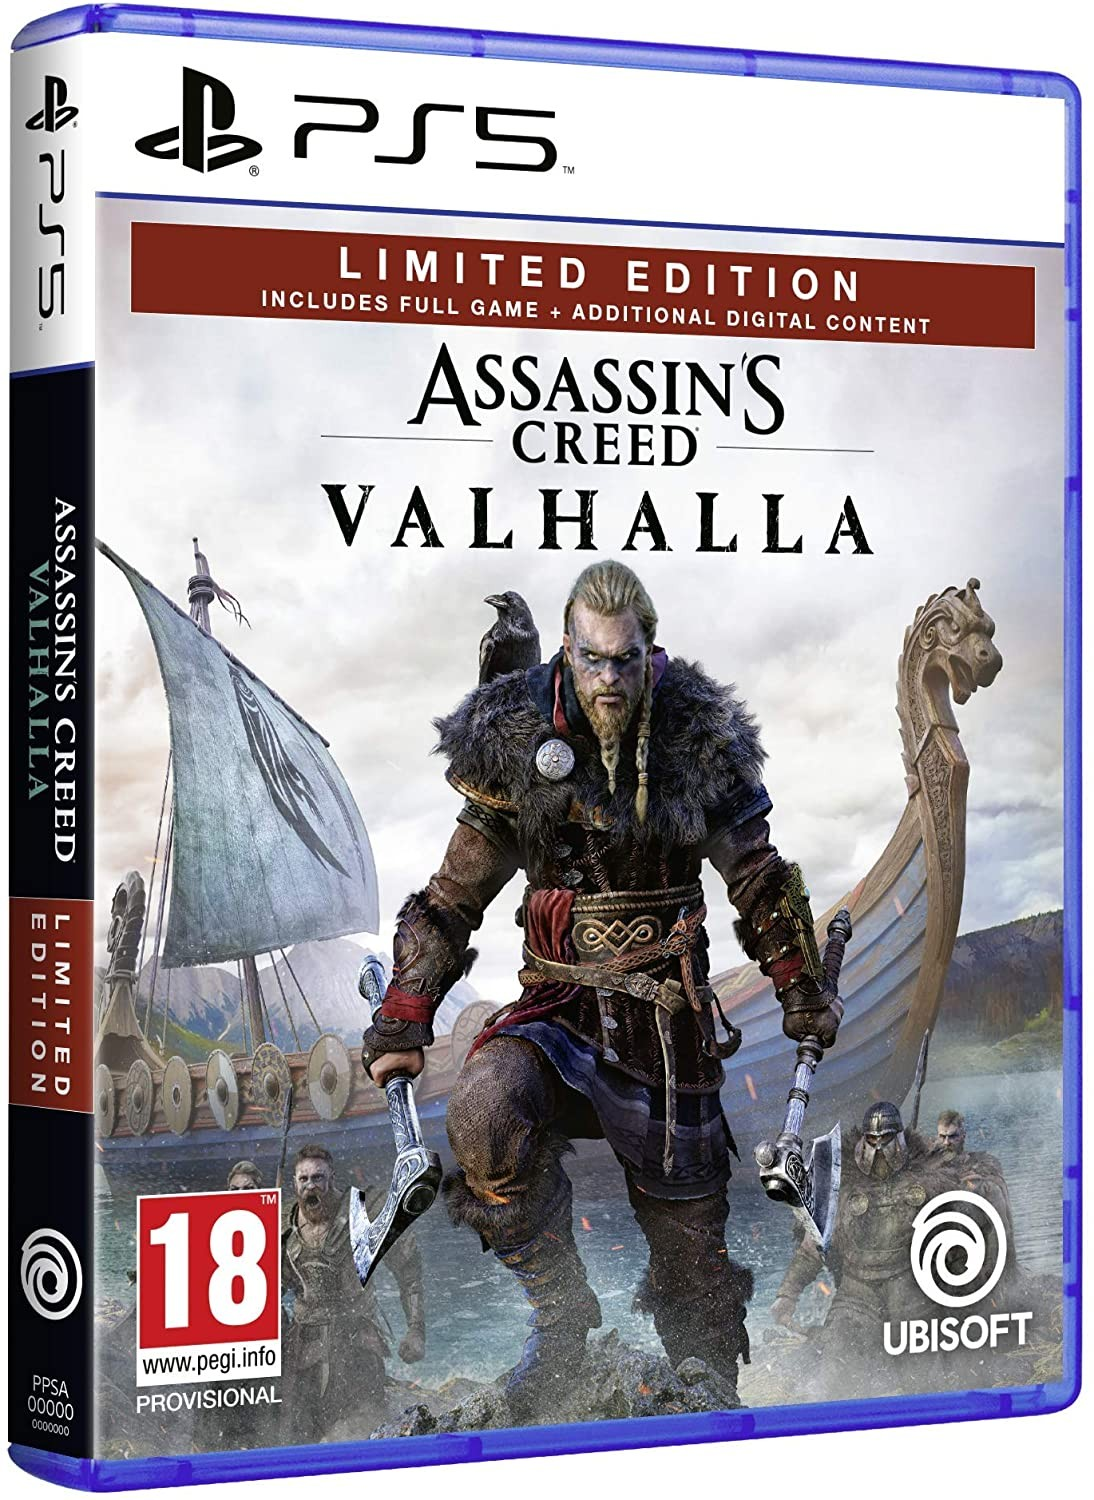 Assassin's Creed Valhalla Limited Edition | Assassin's Creed Вальгалла Лімітоване Видання PS5